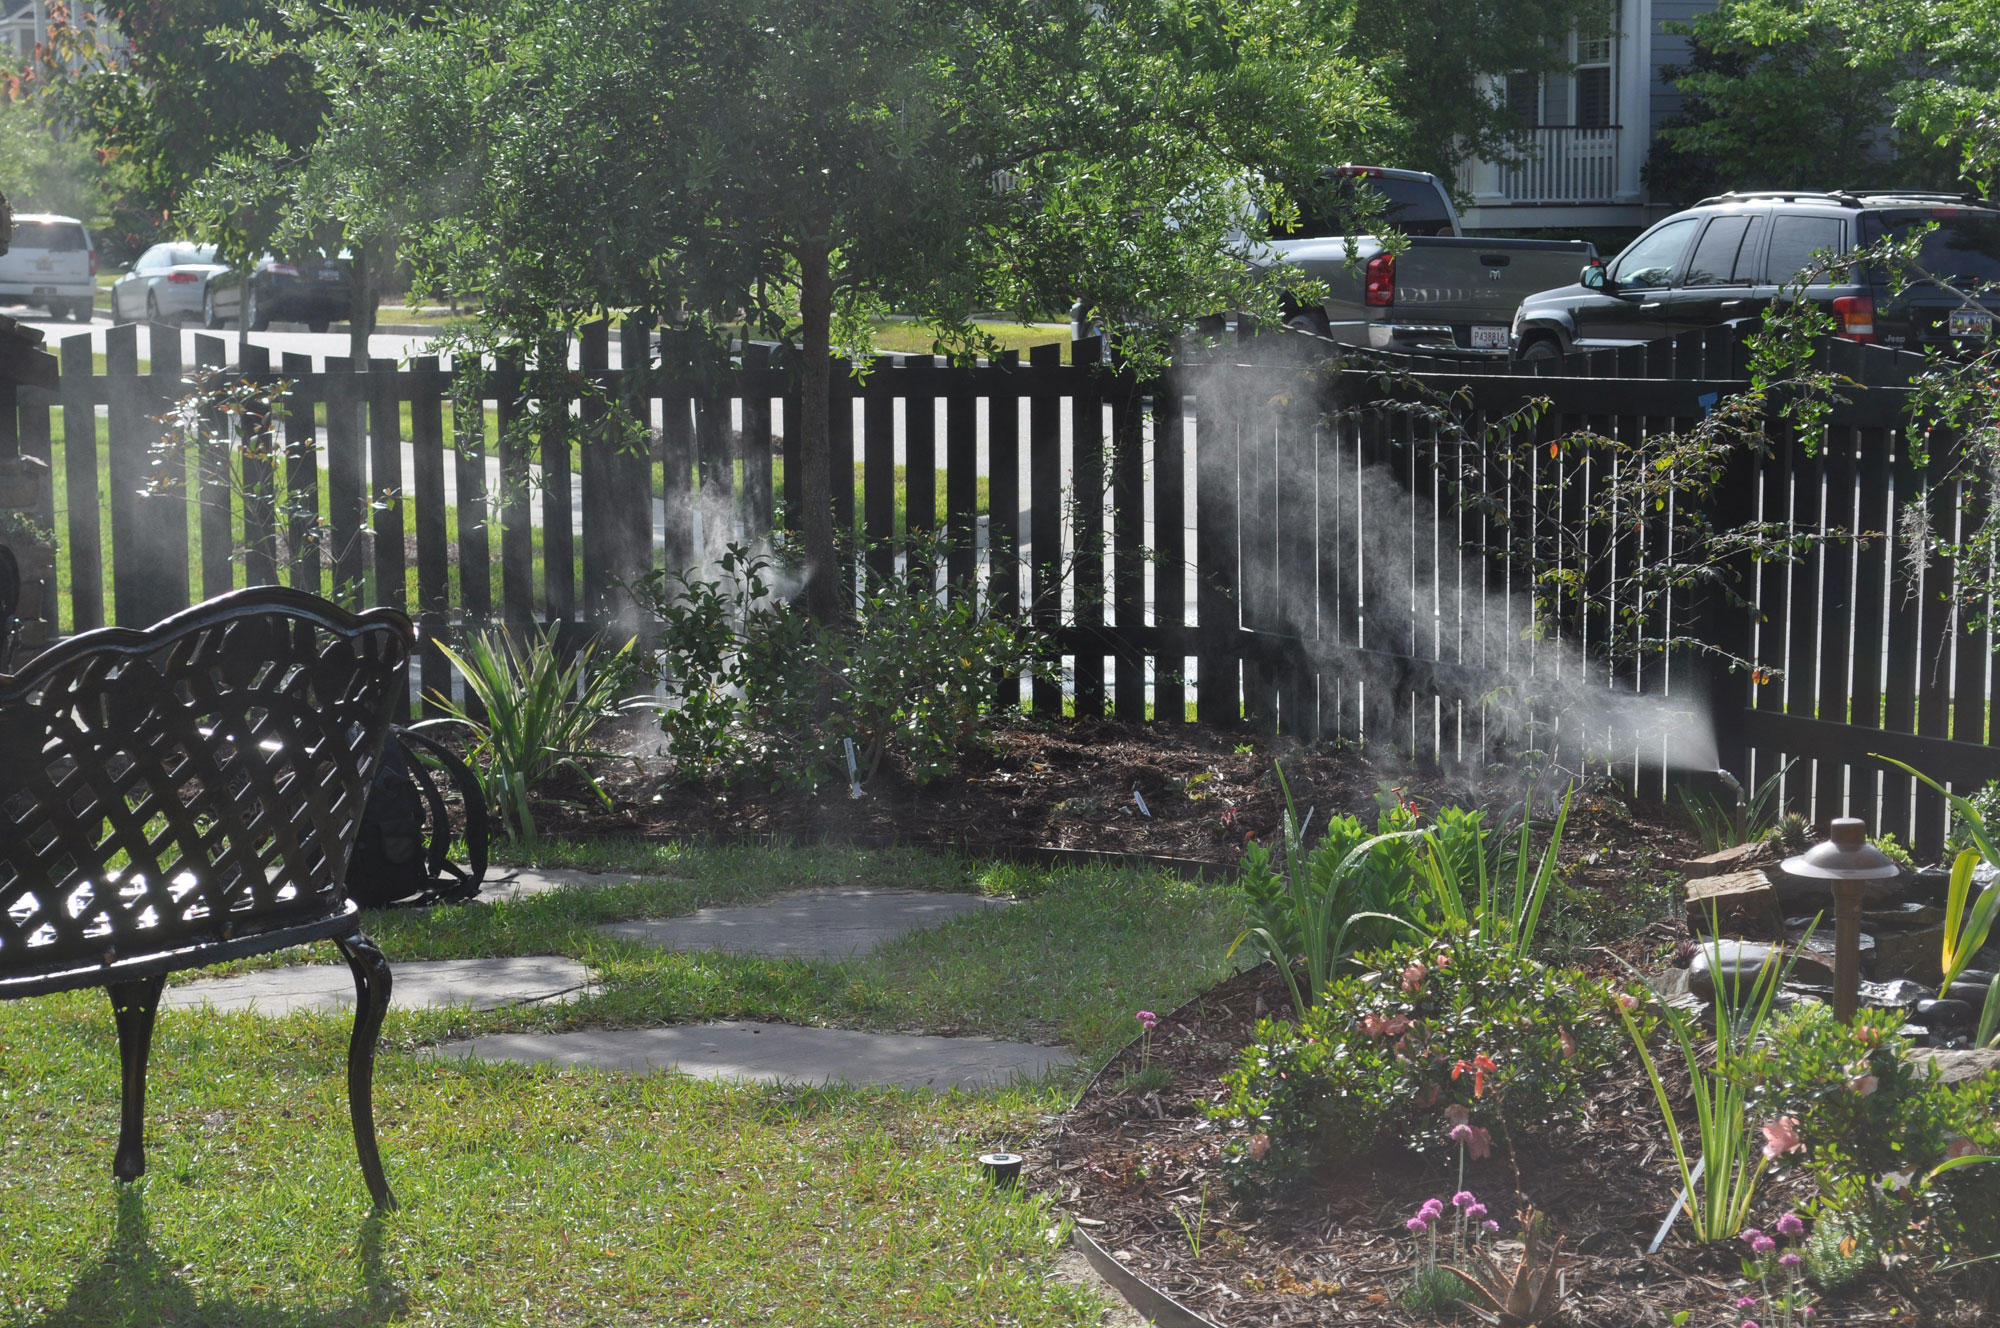 misting-system---designing; mist to keep mosquitoes away